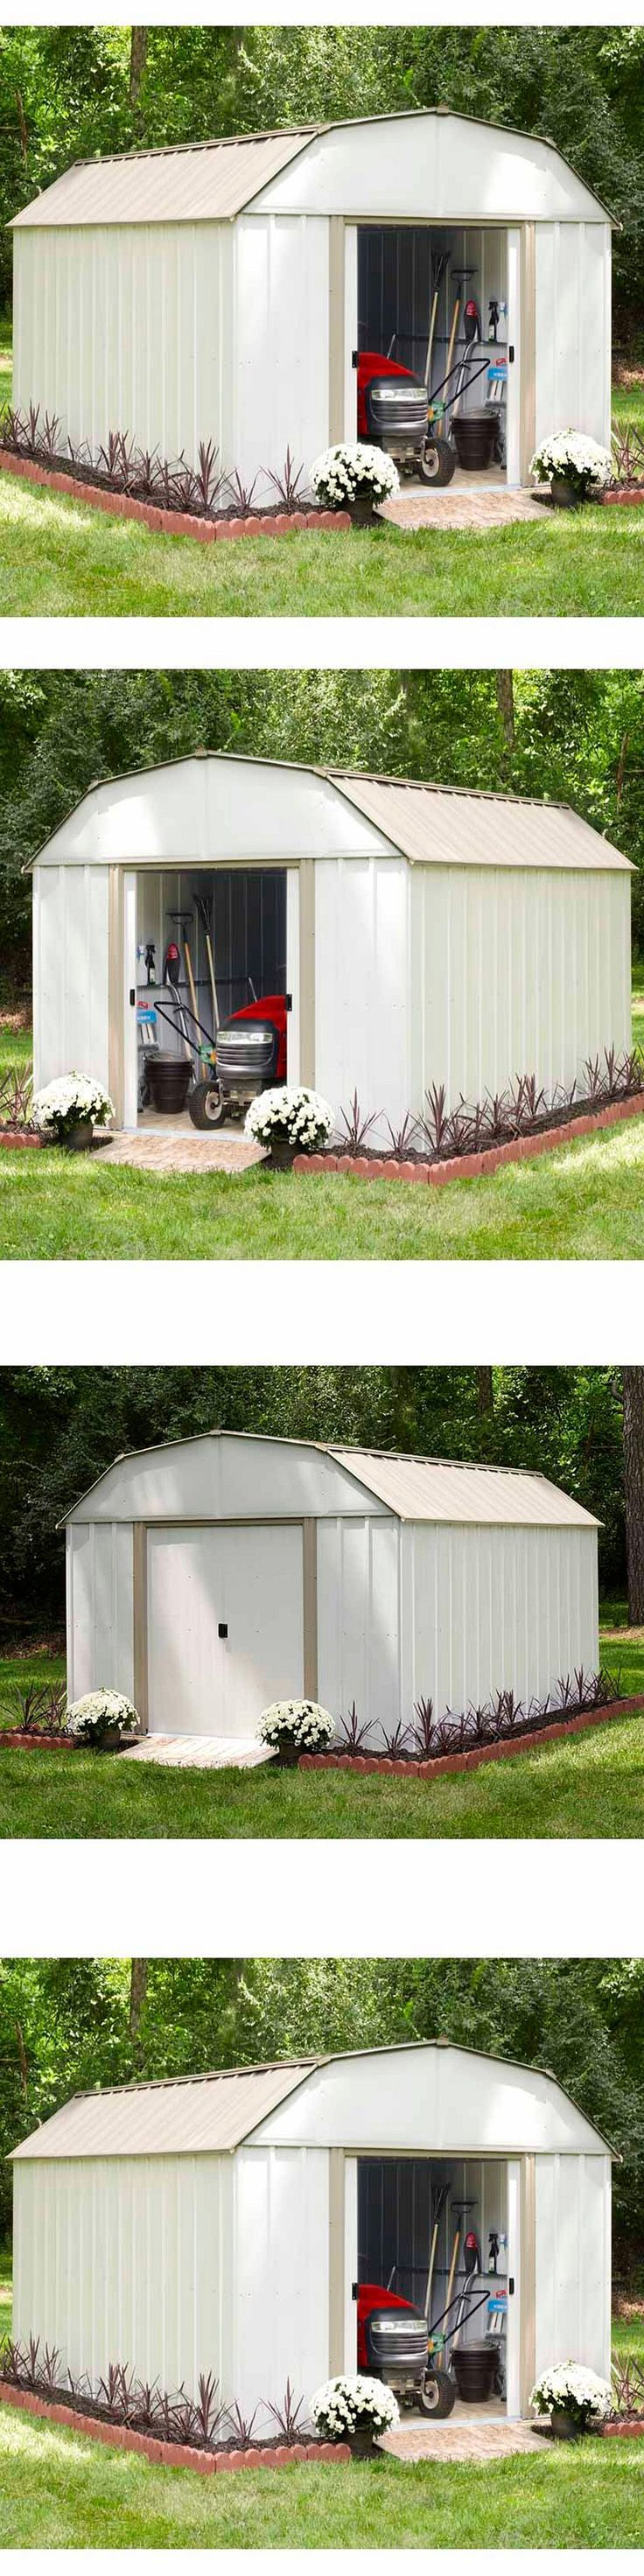 The garage turned garden shed storage ideas country living - Garden And Storage Sheds 139956 Garage Garden 10 X 12 Outdoor Storage Shed Backyard Metal